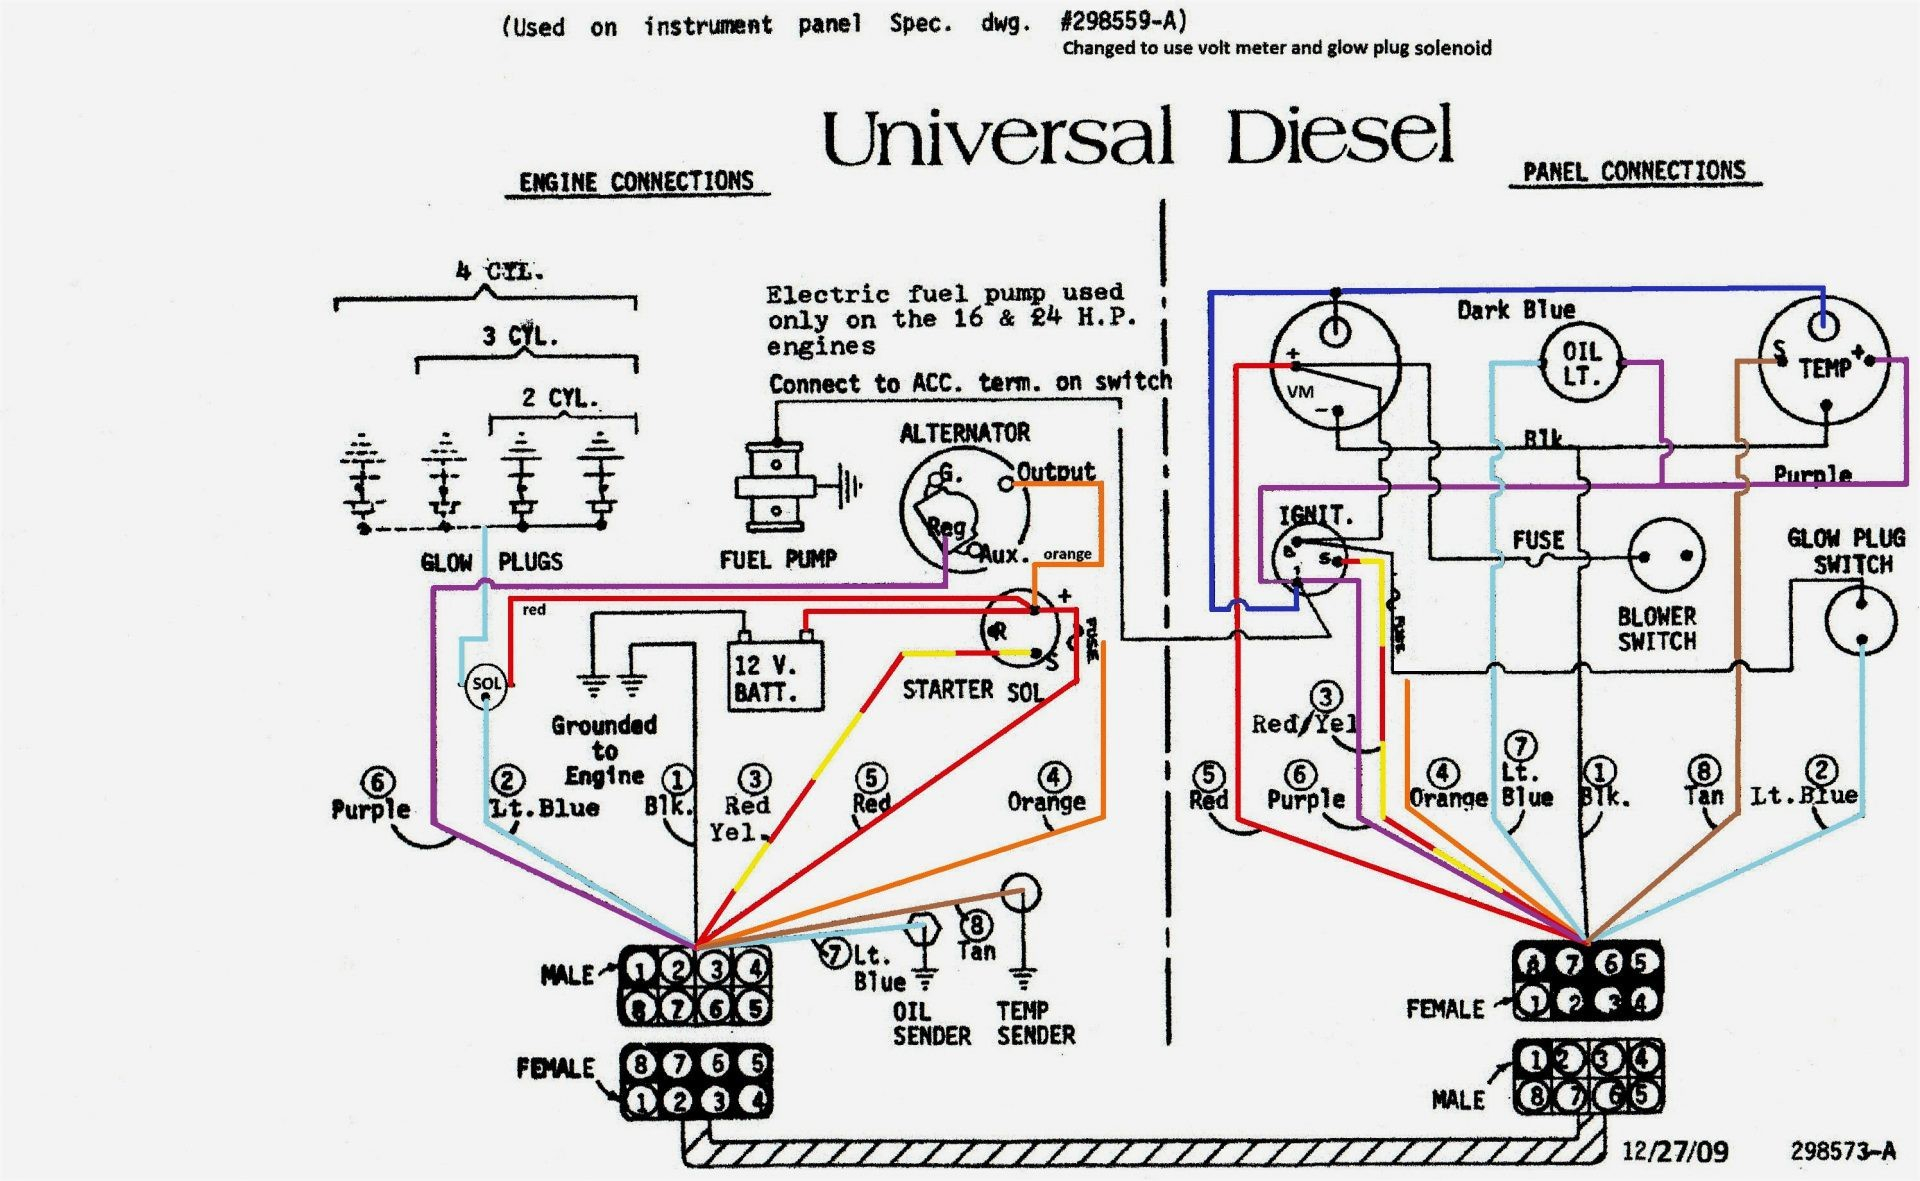 1997 Dodge Ram 1500 Trailer Wiring Diagram New 7 Pin Plug 16 0 - 3 Wire Trailer Wiring Diagram